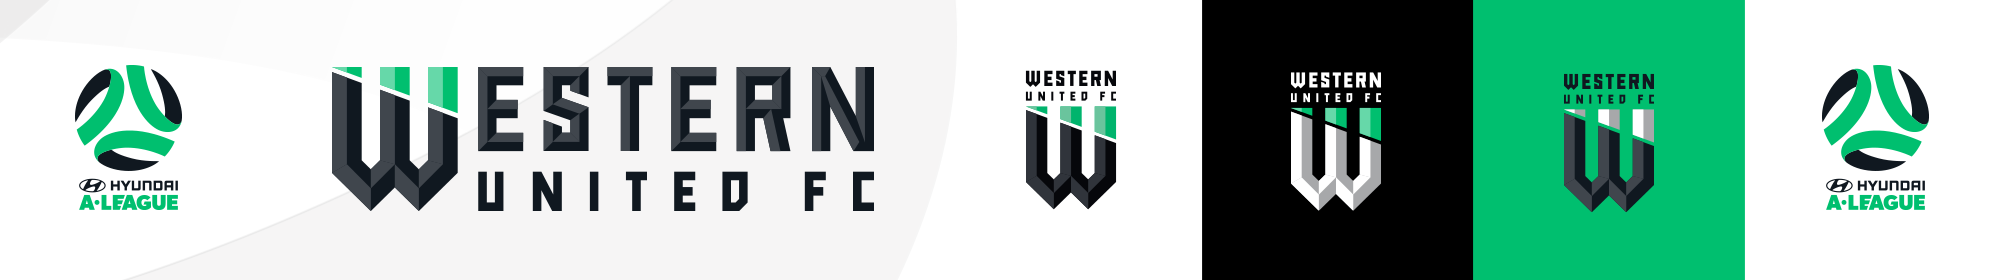 Western United FC thin banner linking to WUFC website